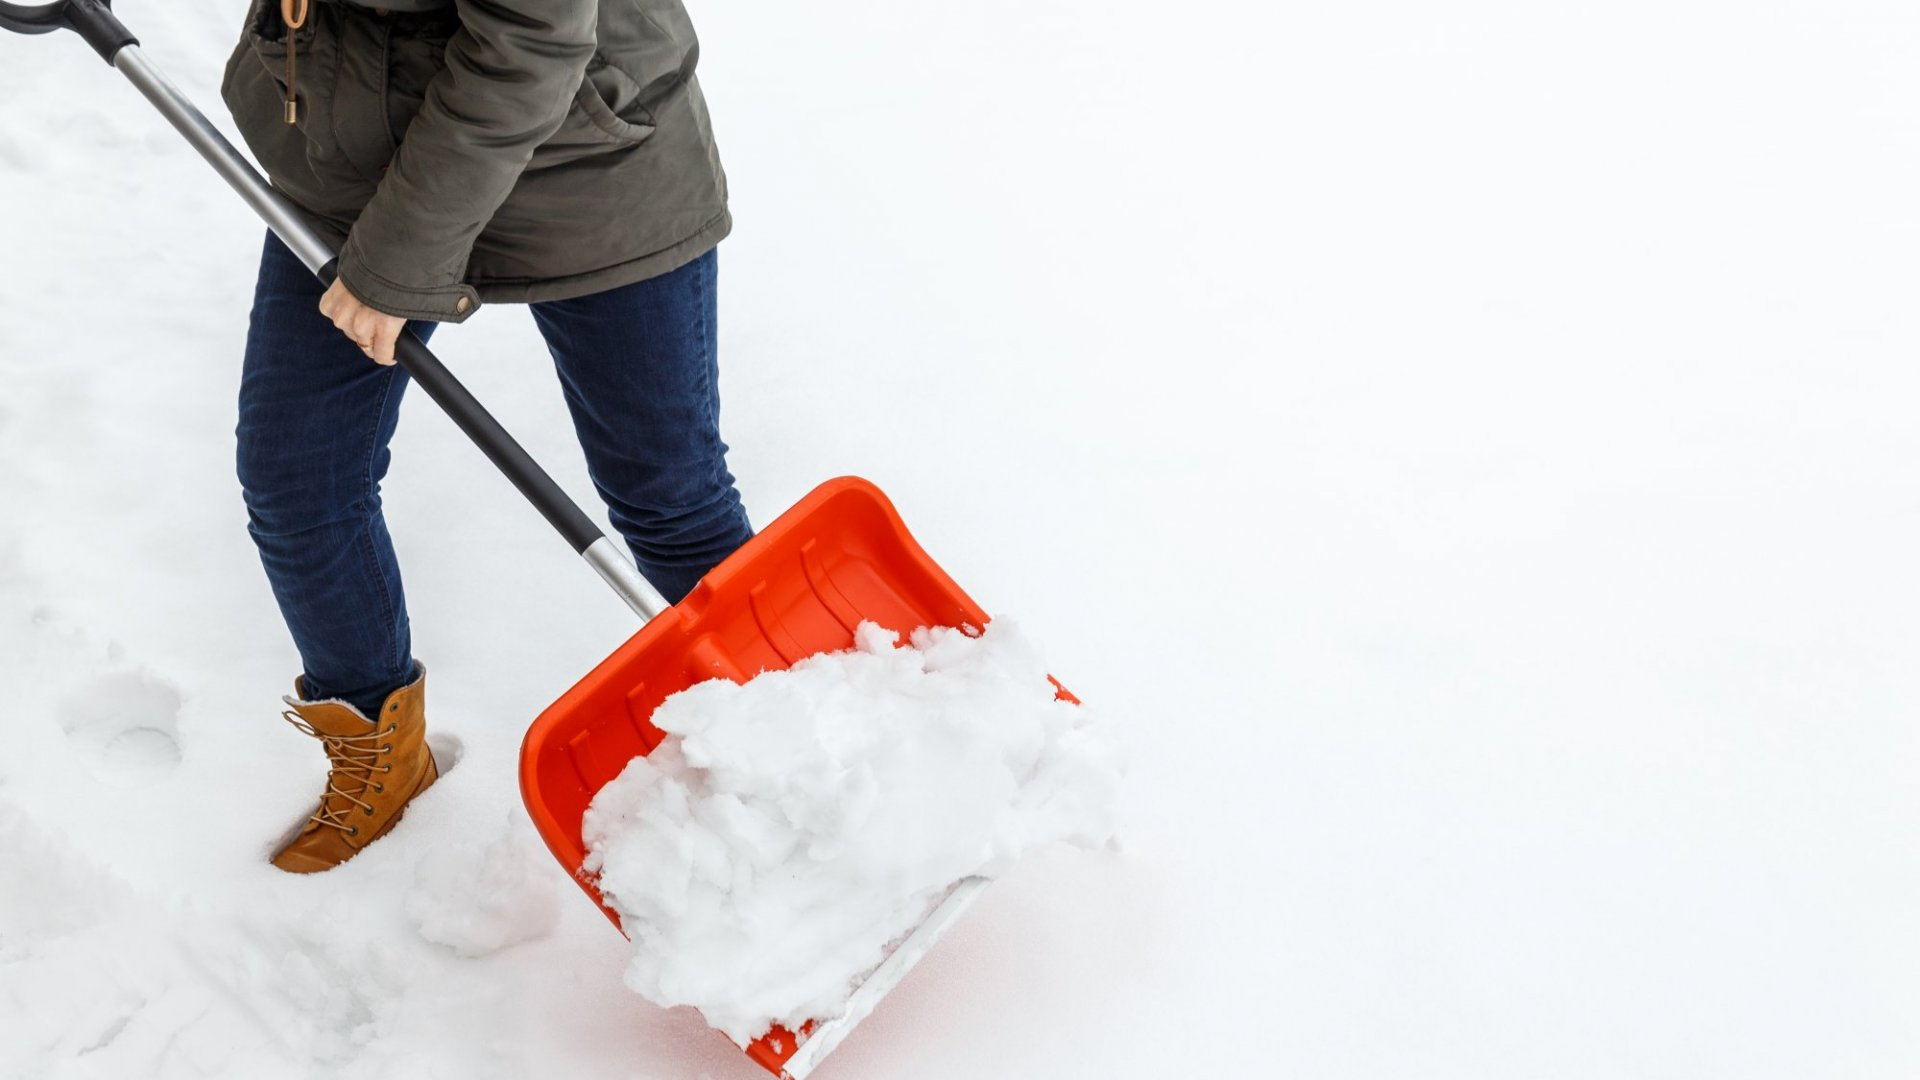 Missouri: You Need a Permit to Shovel Grandma's Snow